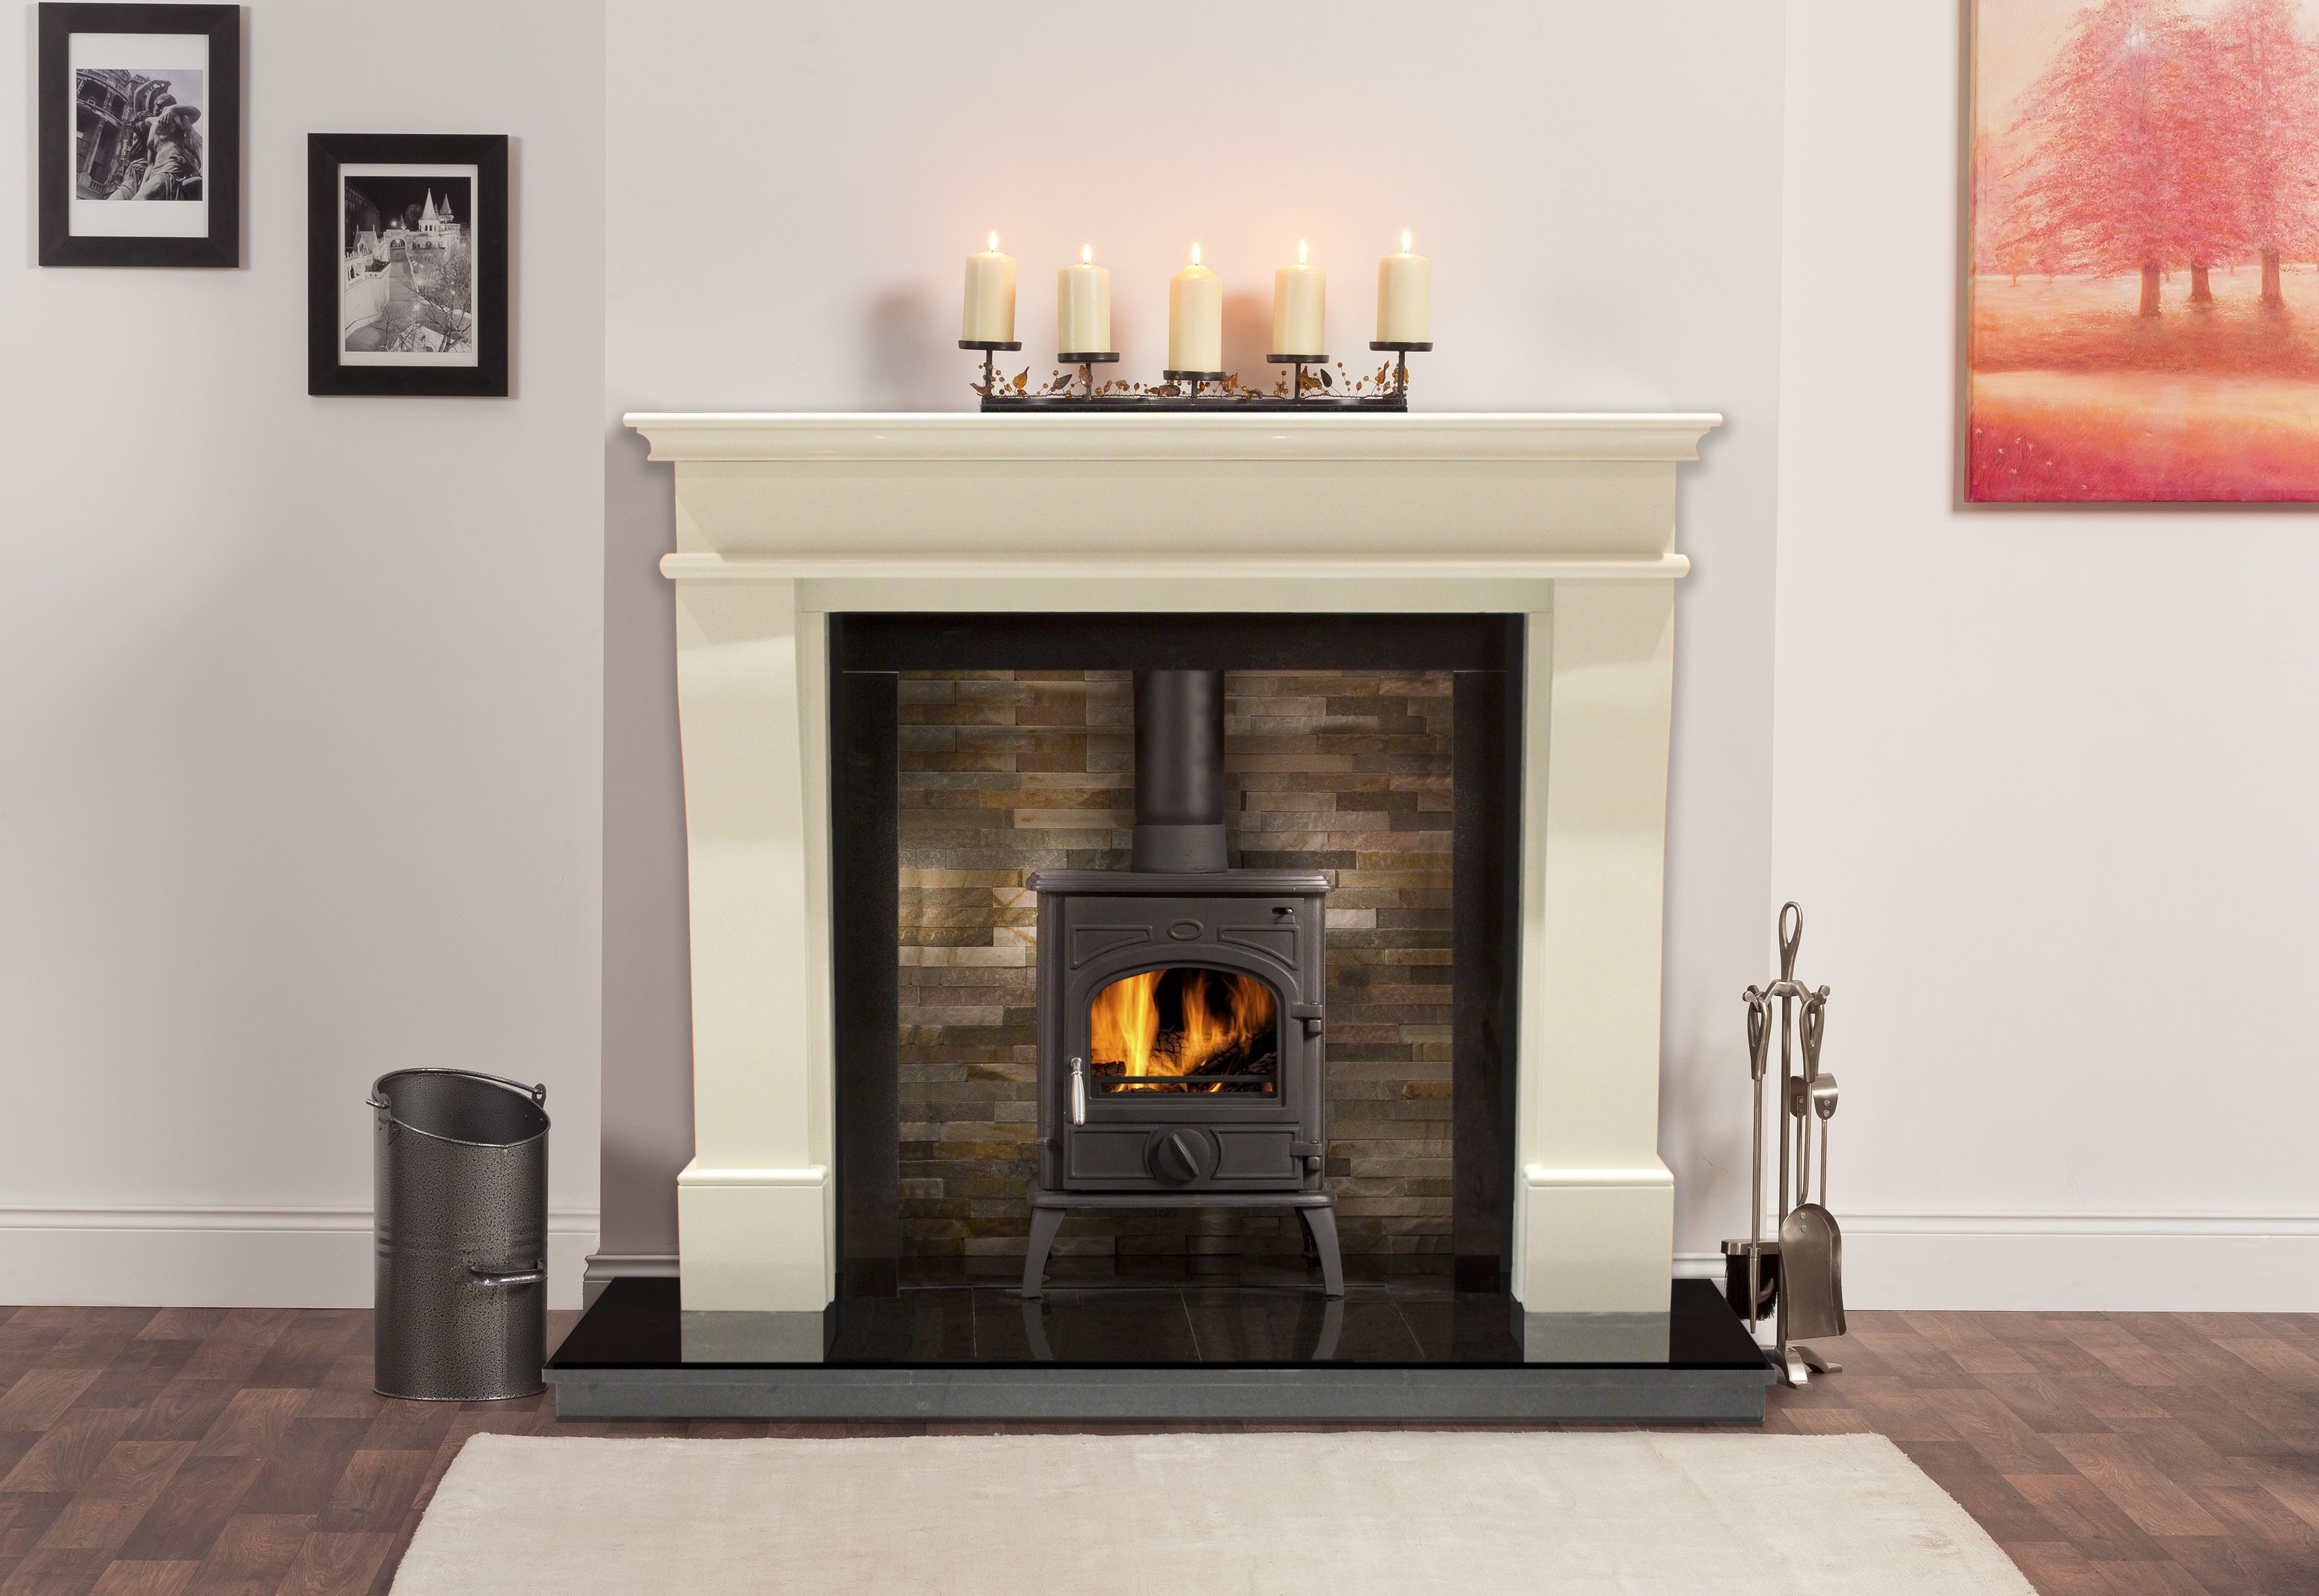 Take A Look At This Beautiful Durham Surround In Ivory Pearl With A San Remo Freestanding Stove Granite Slips Fireplace Option Freestanding Stove Home Trends